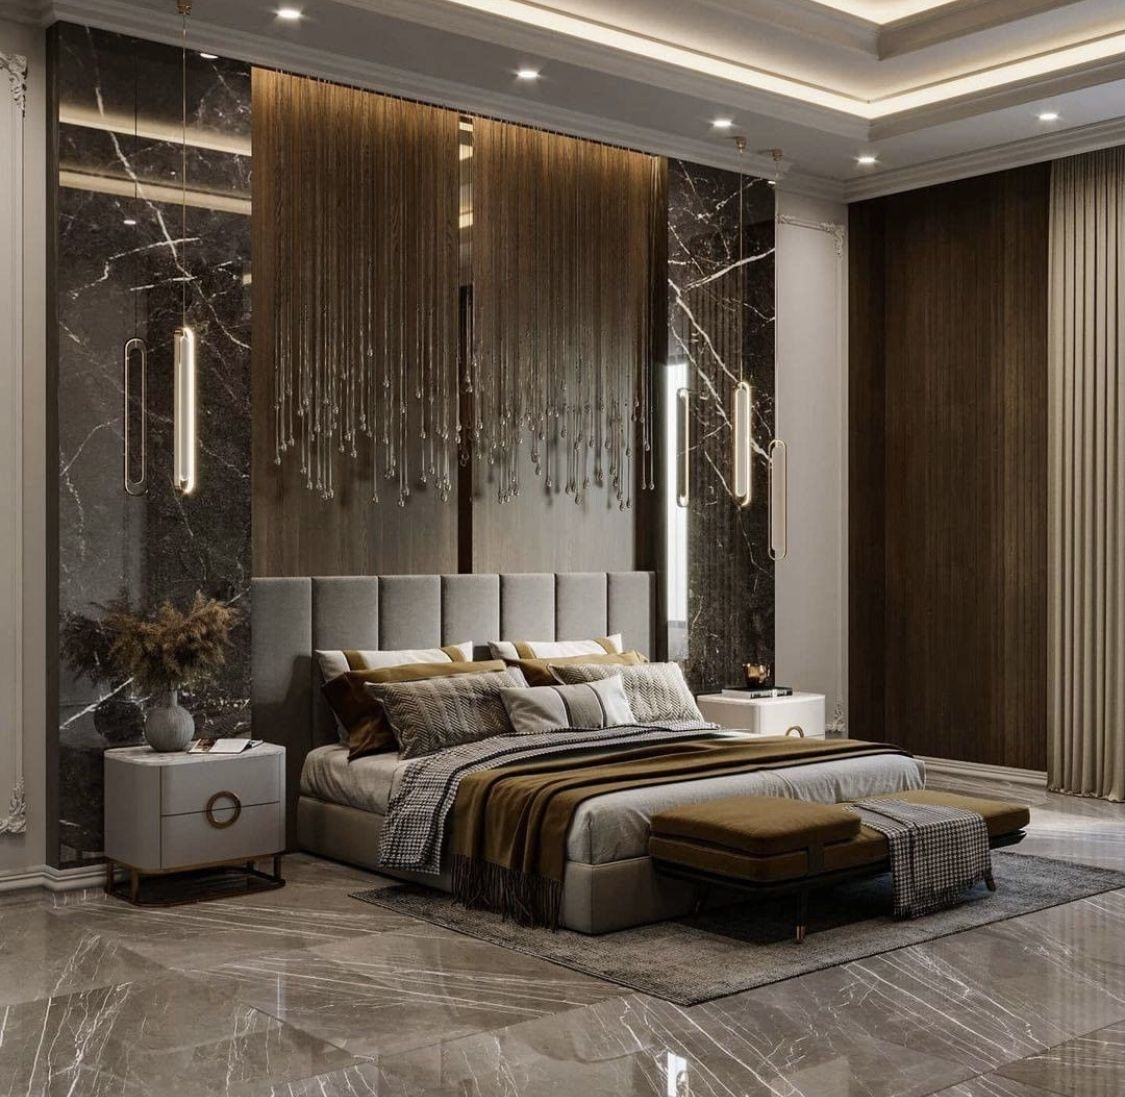 Elegant Taupe Grey And Gold Modern Bedroom Decor With Channel Tufted Bed An In 2021 Bedroom Interior Design Luxury Luxury Master Bedroom Design Master Bedroom Interior Elegant luxury room design